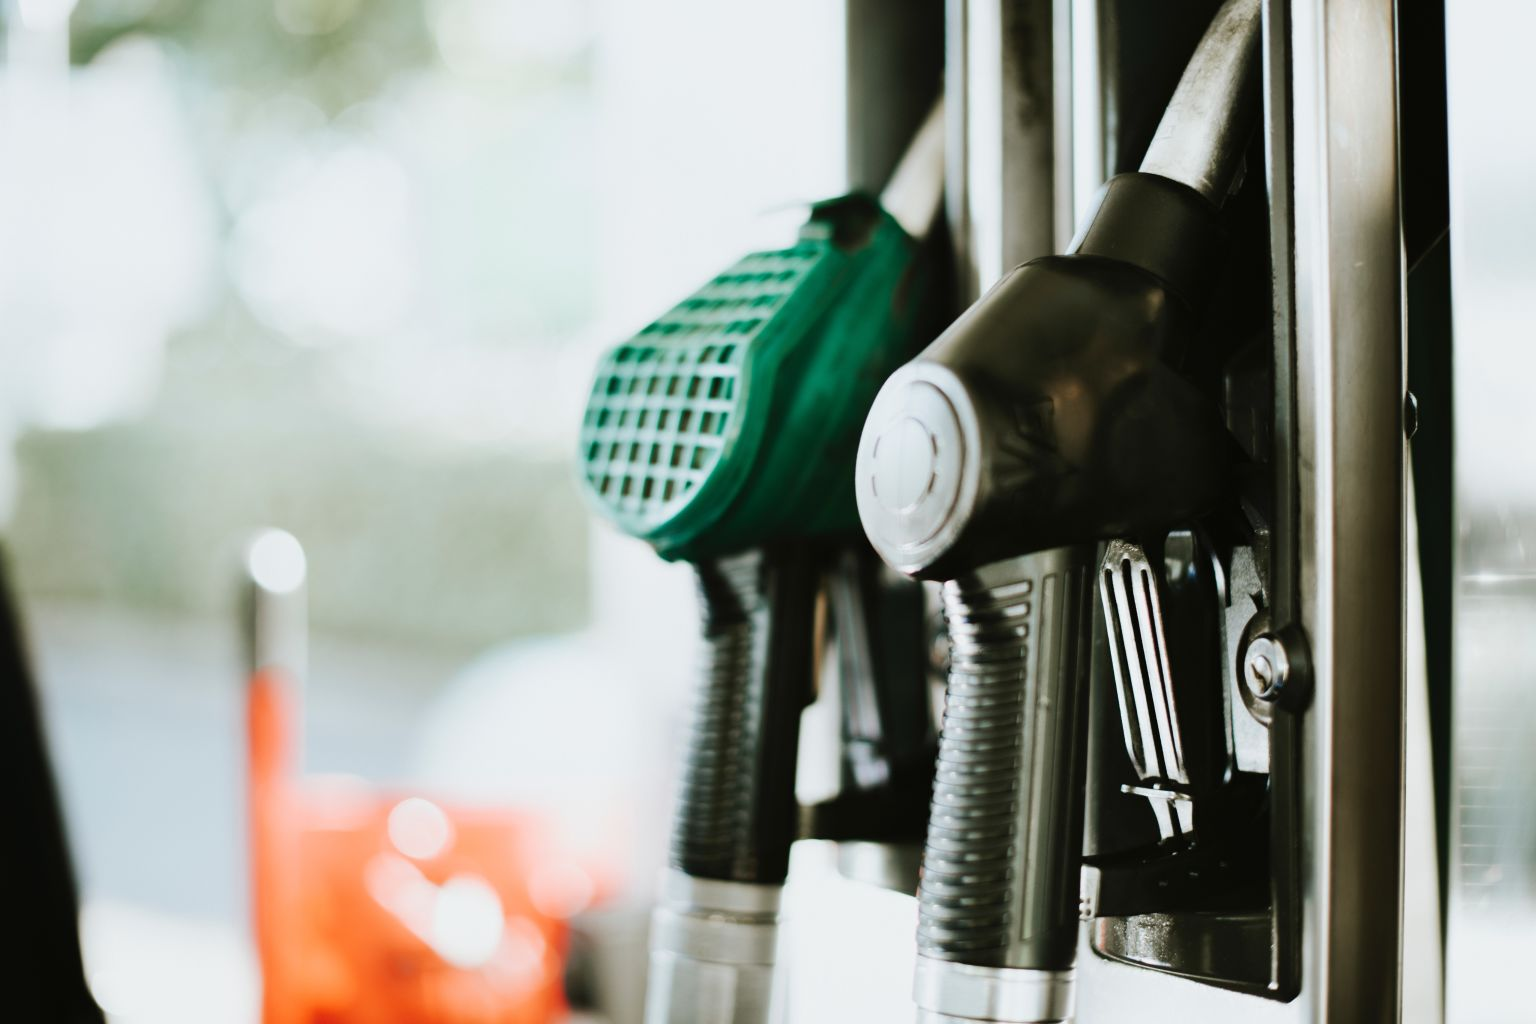 Our guide to different types of fuel - Petrol vs Diesel